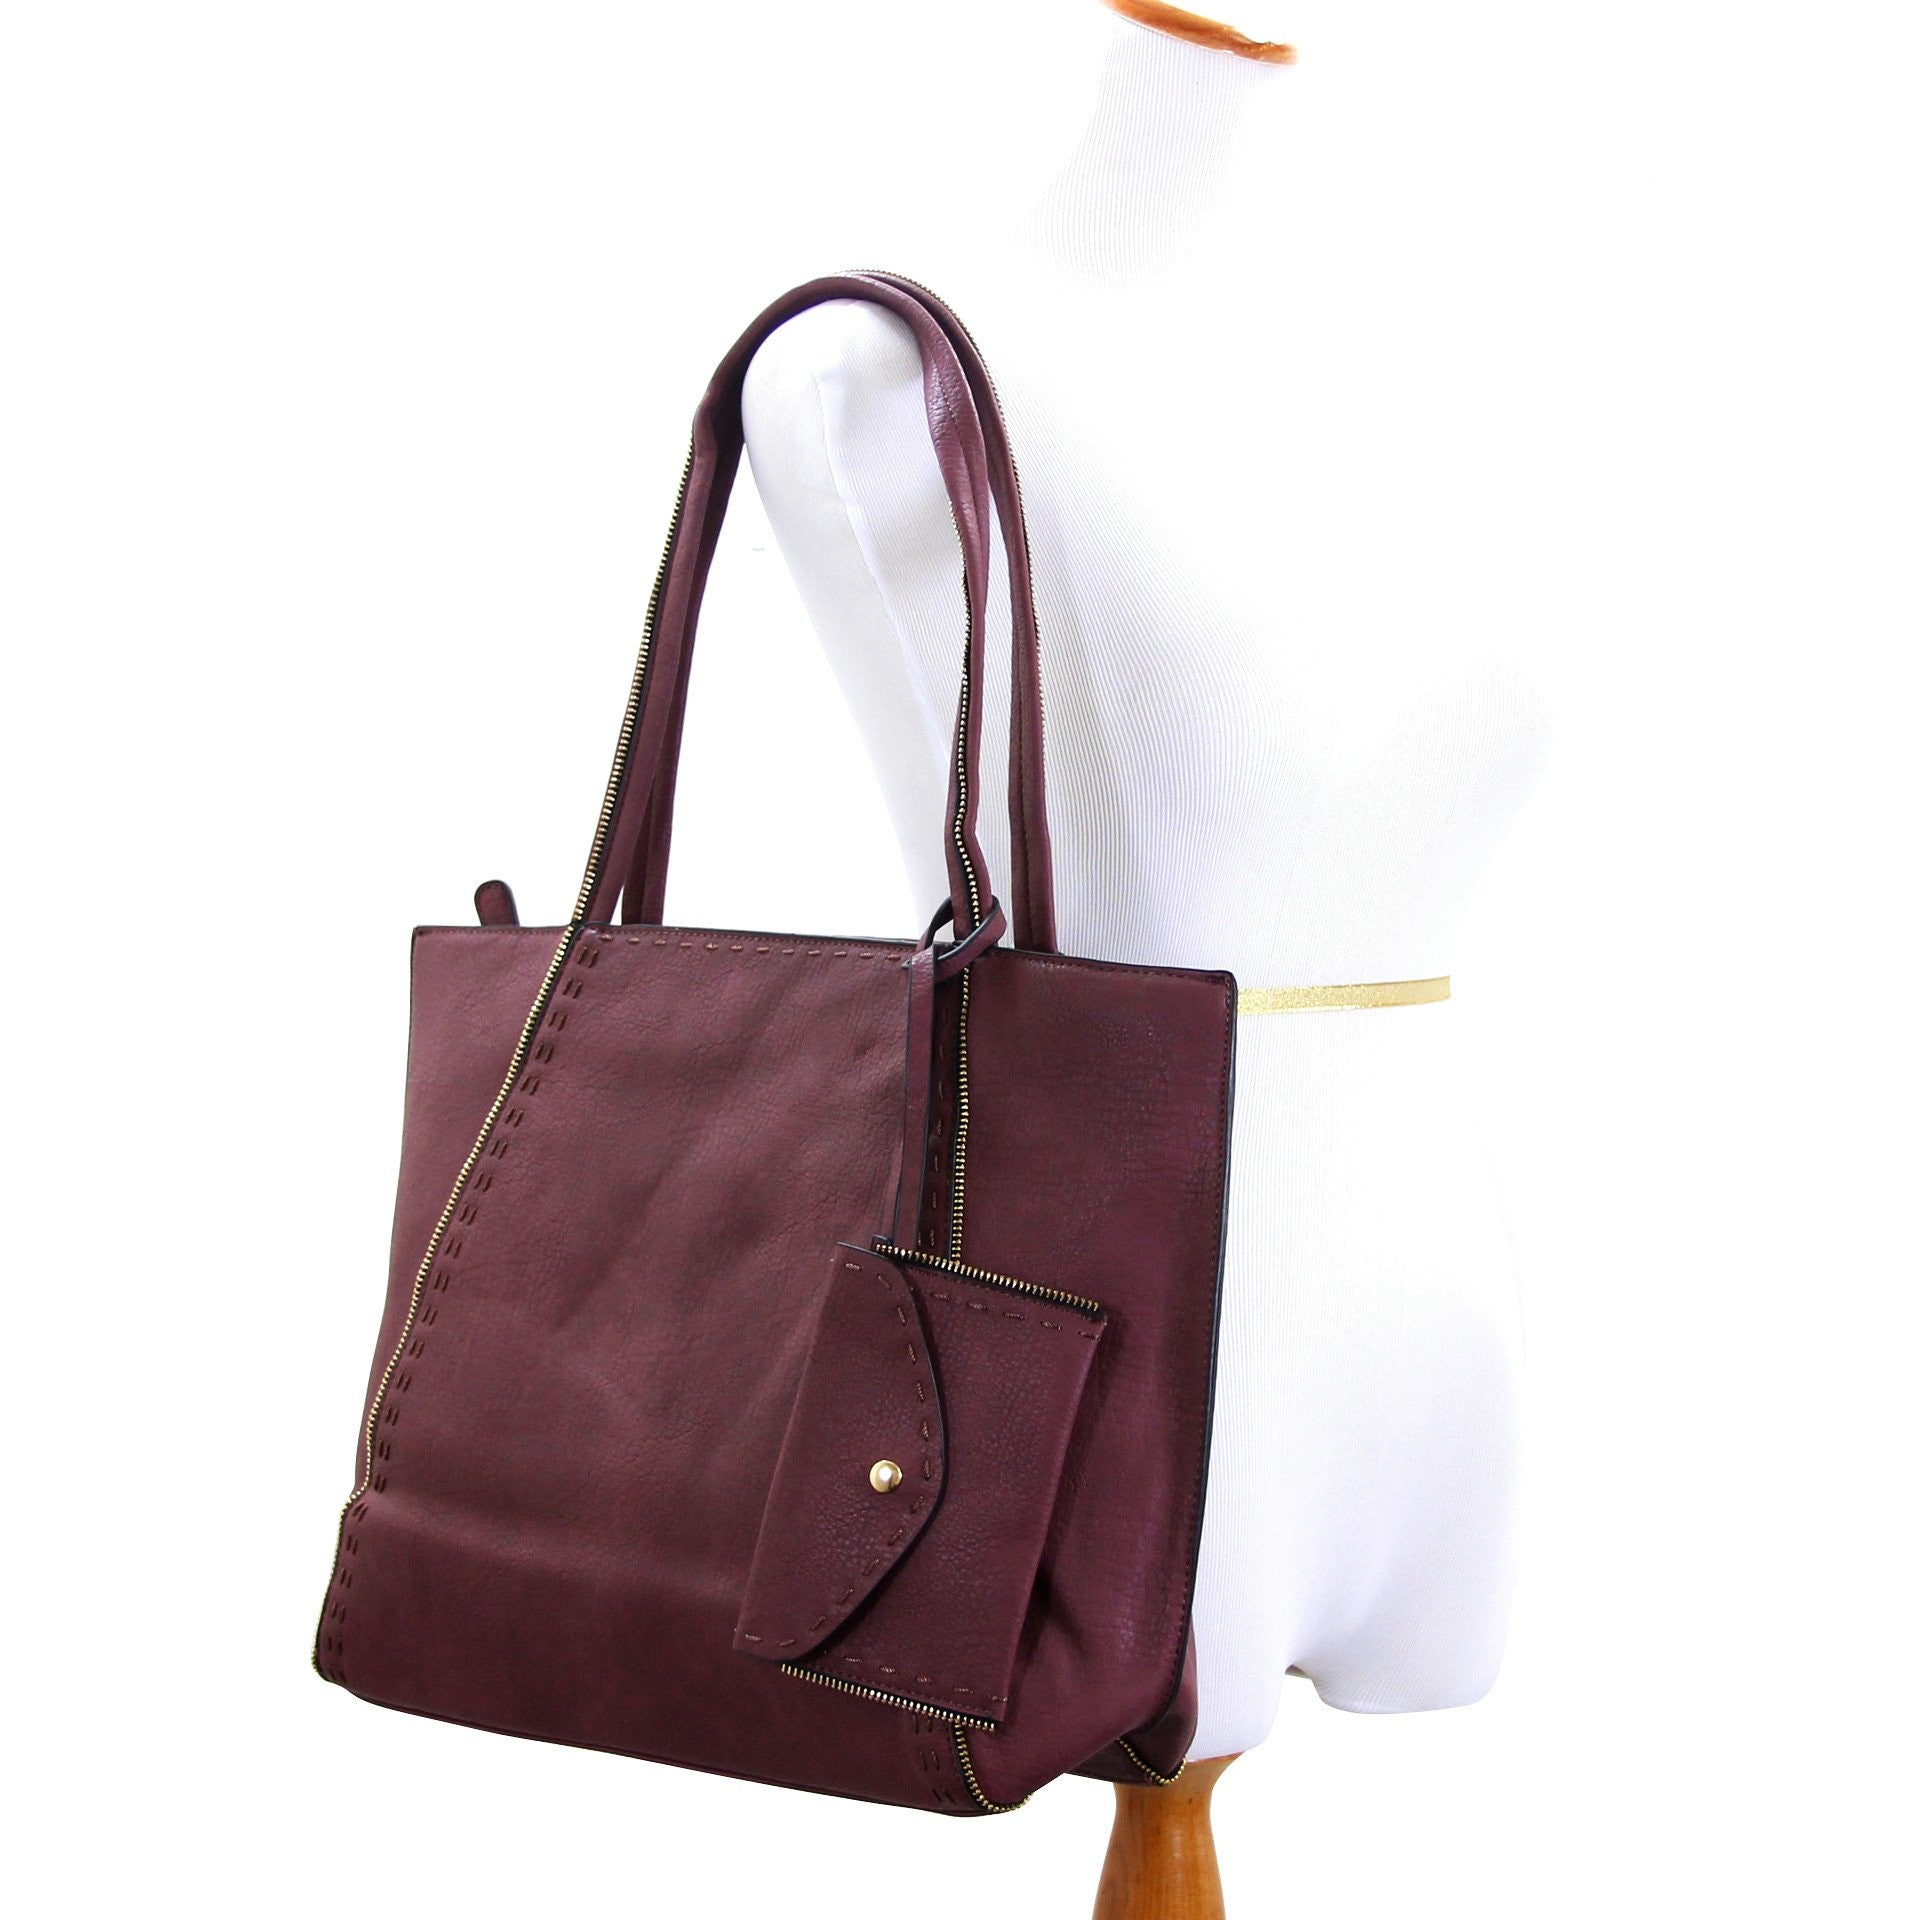 Handbag, Purse, Totes, Shoulder Bag, Bag - Robert Matthew Jordan Tote - Mauve